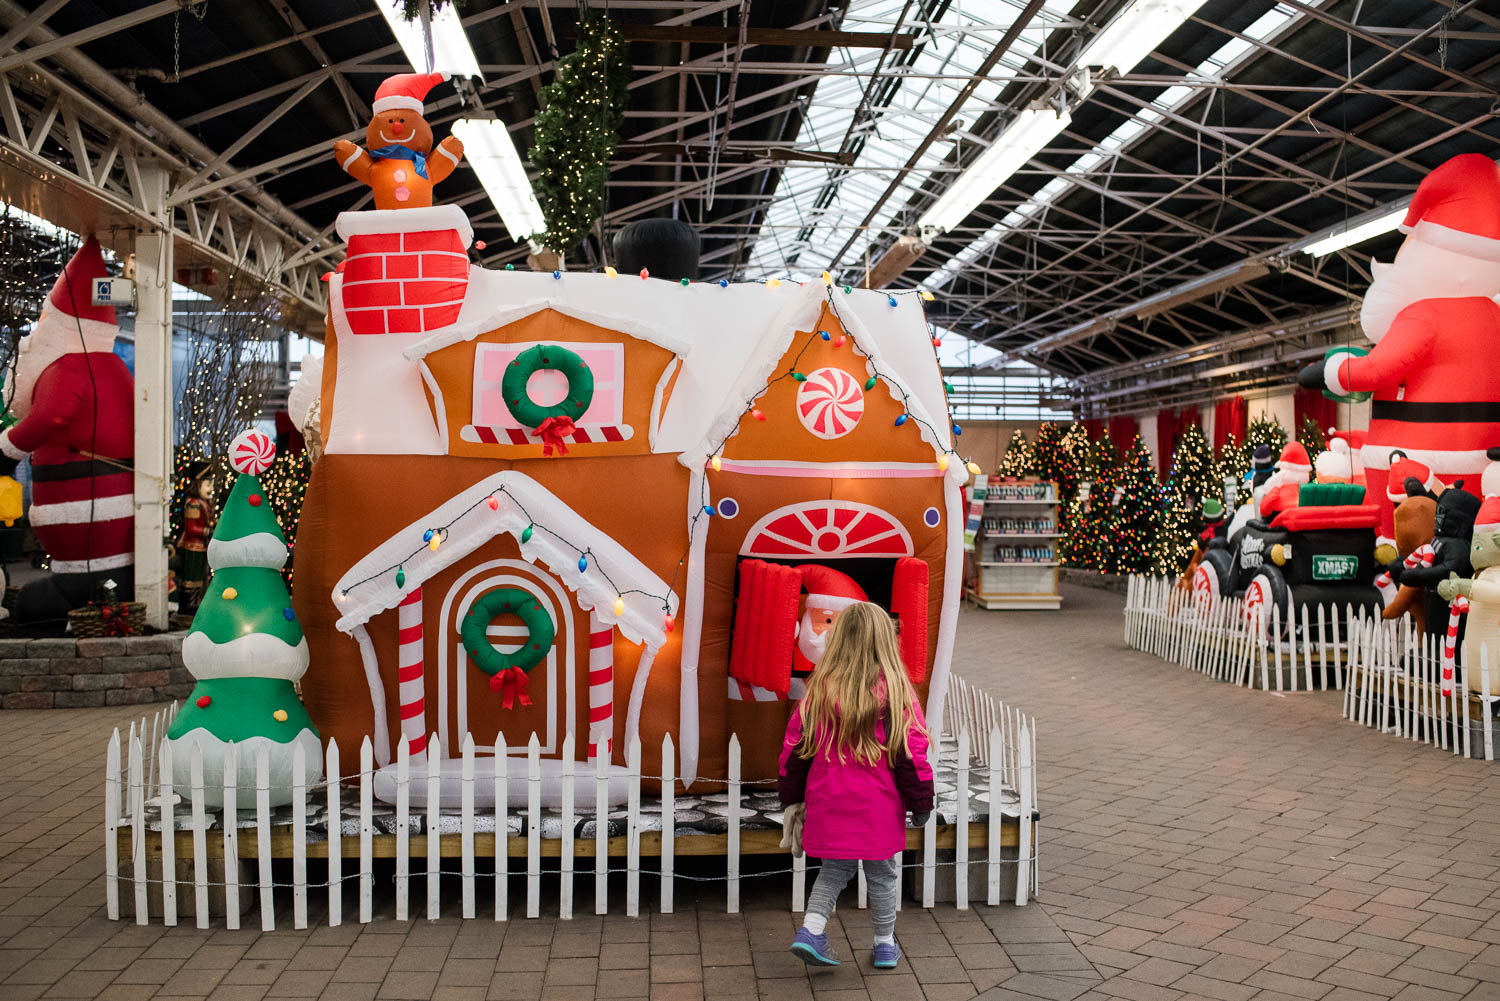 Little girl looking at inflatable Christmas displays at Hicks Nursery.